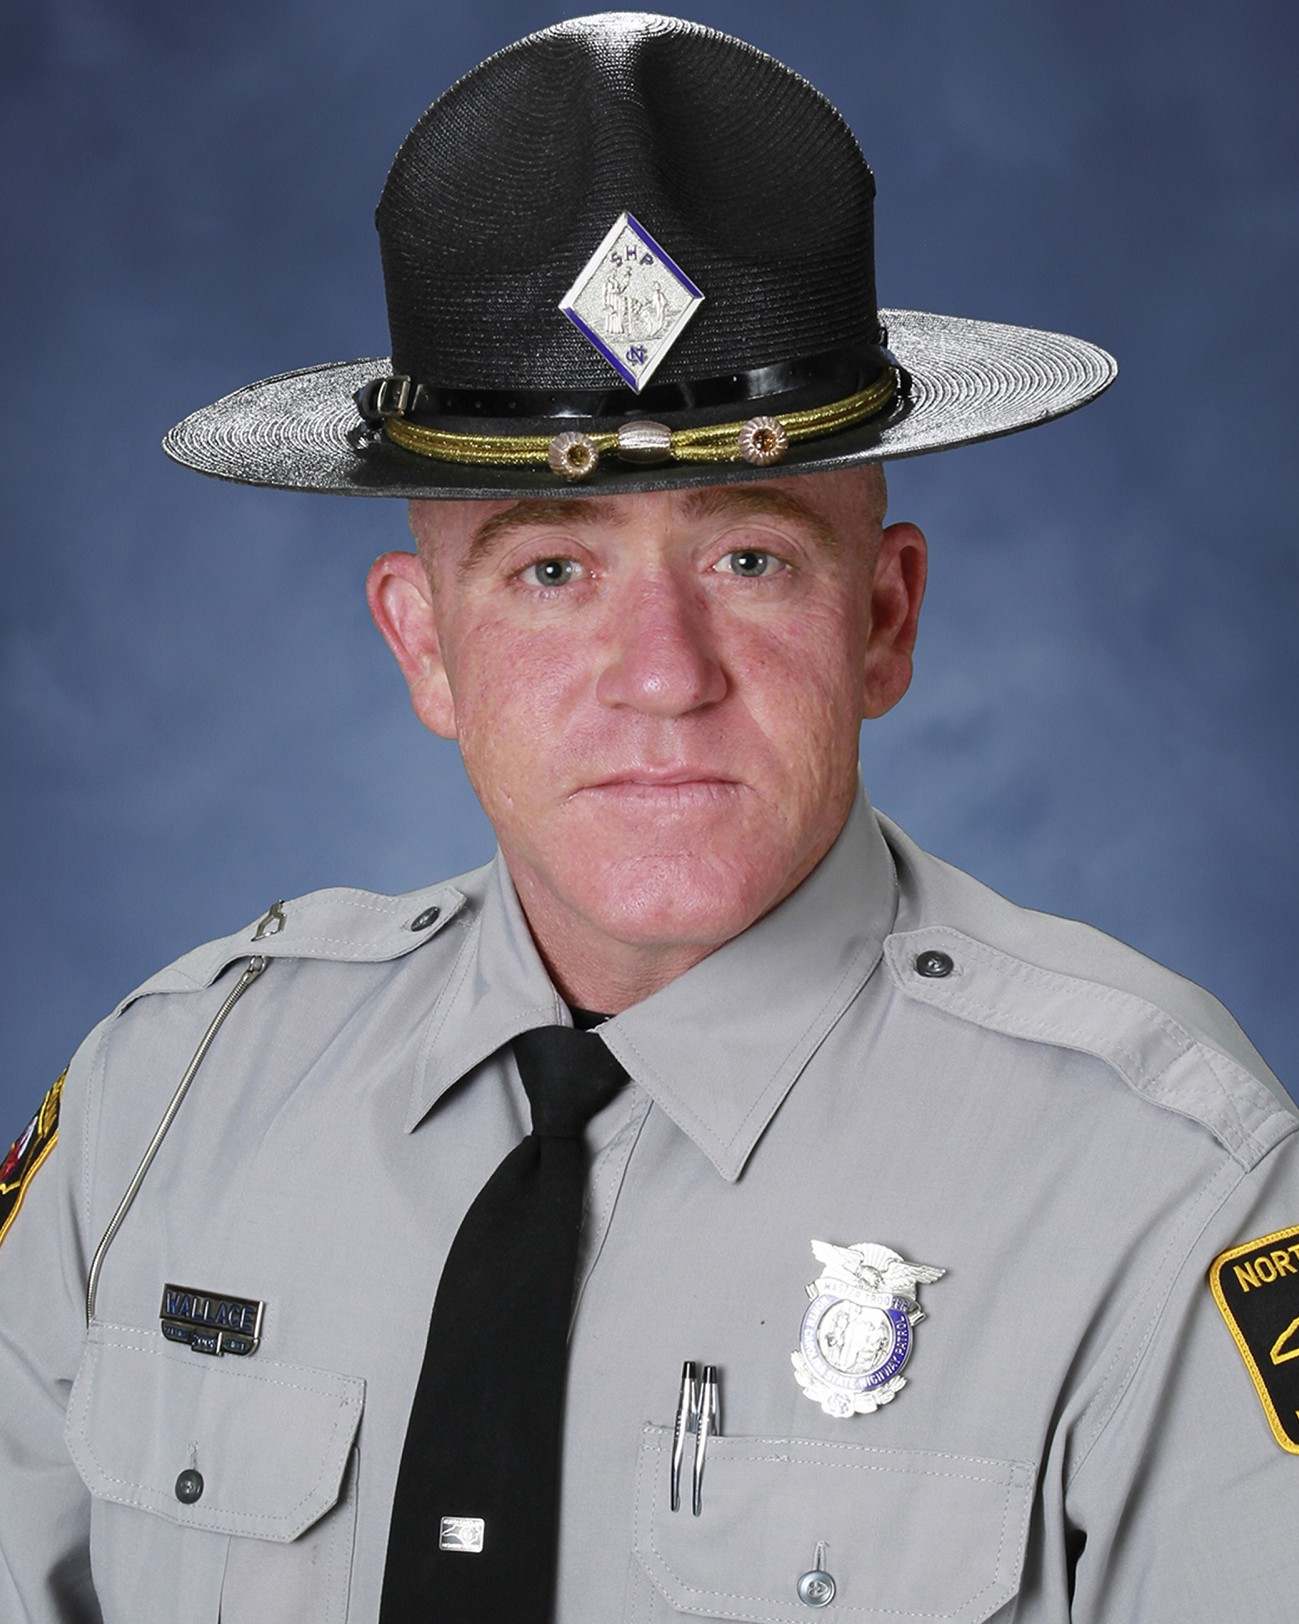 Master Trooper Benjamin Derek Wallace | North Carolina Highway Patrol, North Carolina